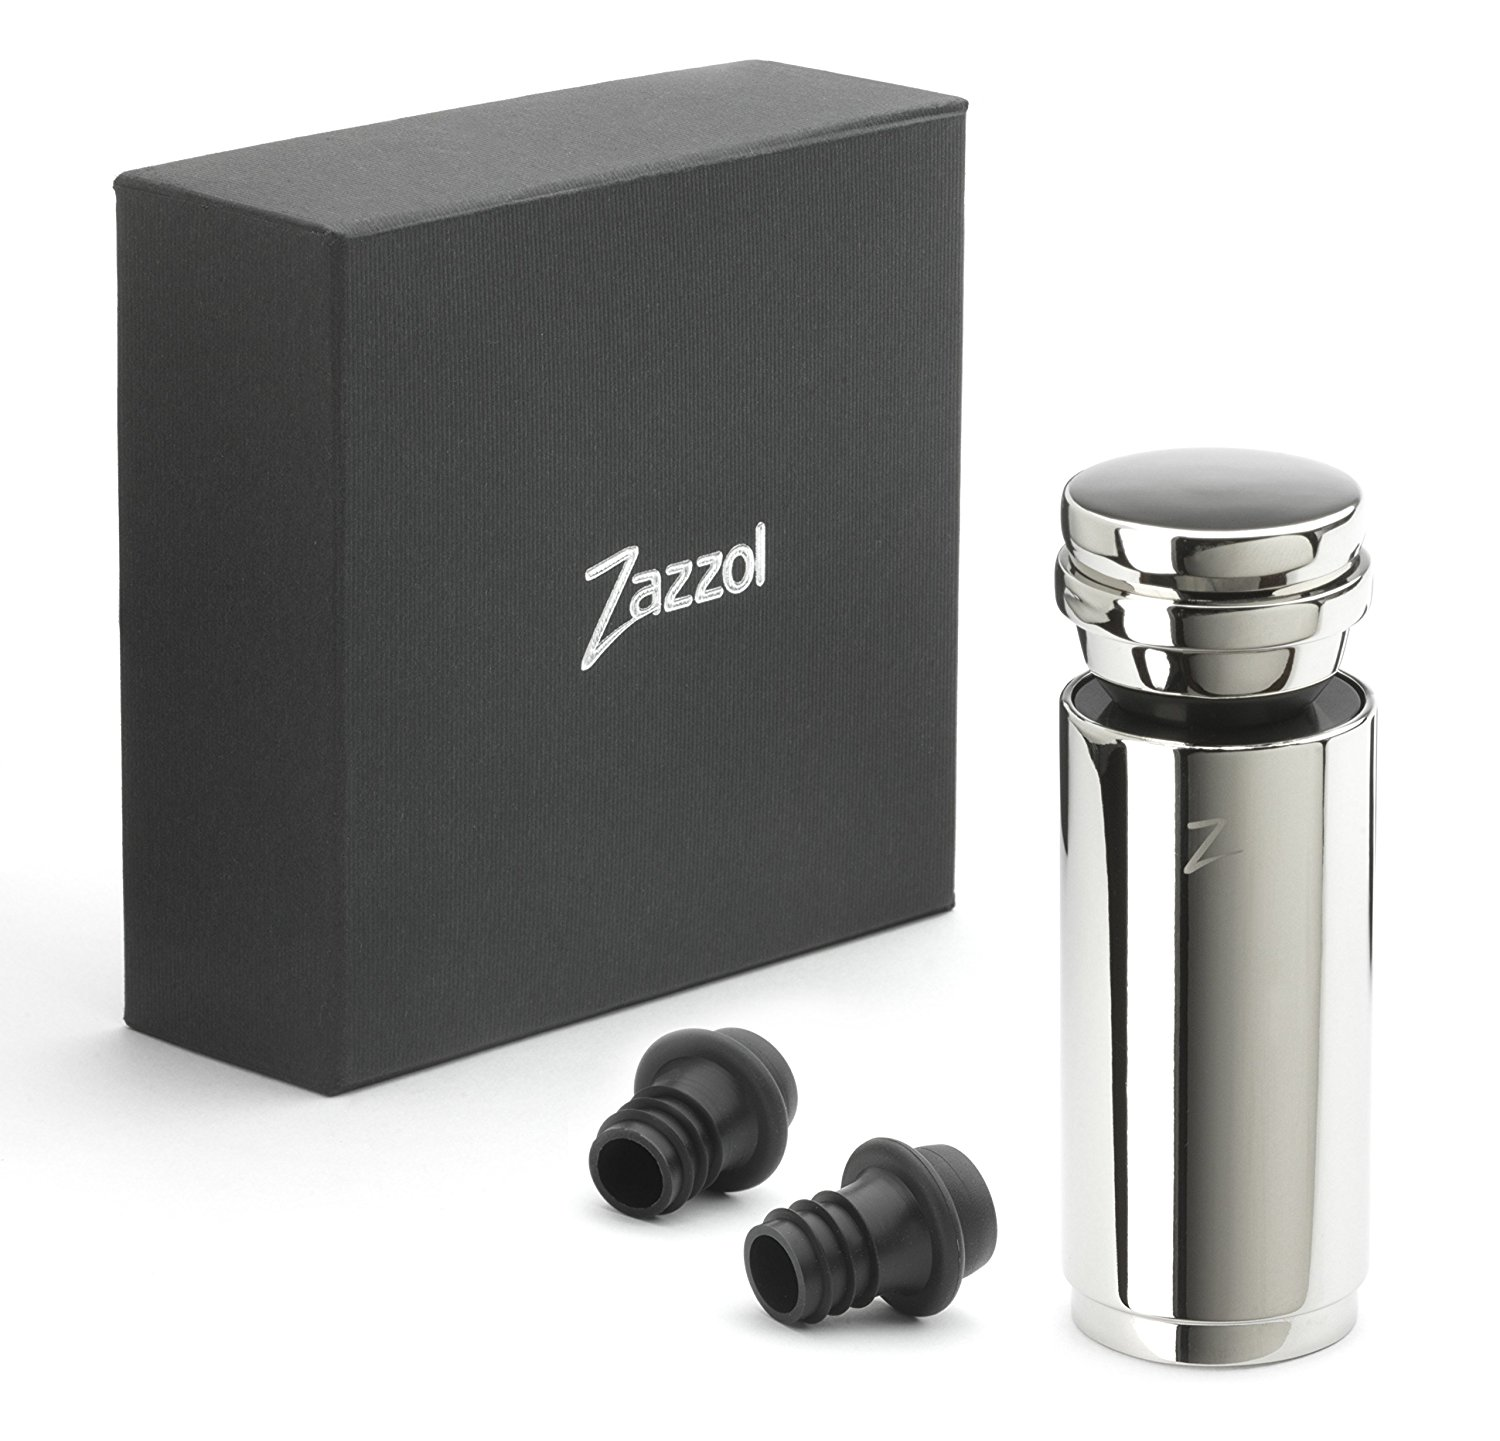 Zazzol Vacuum Pump Wine Saver